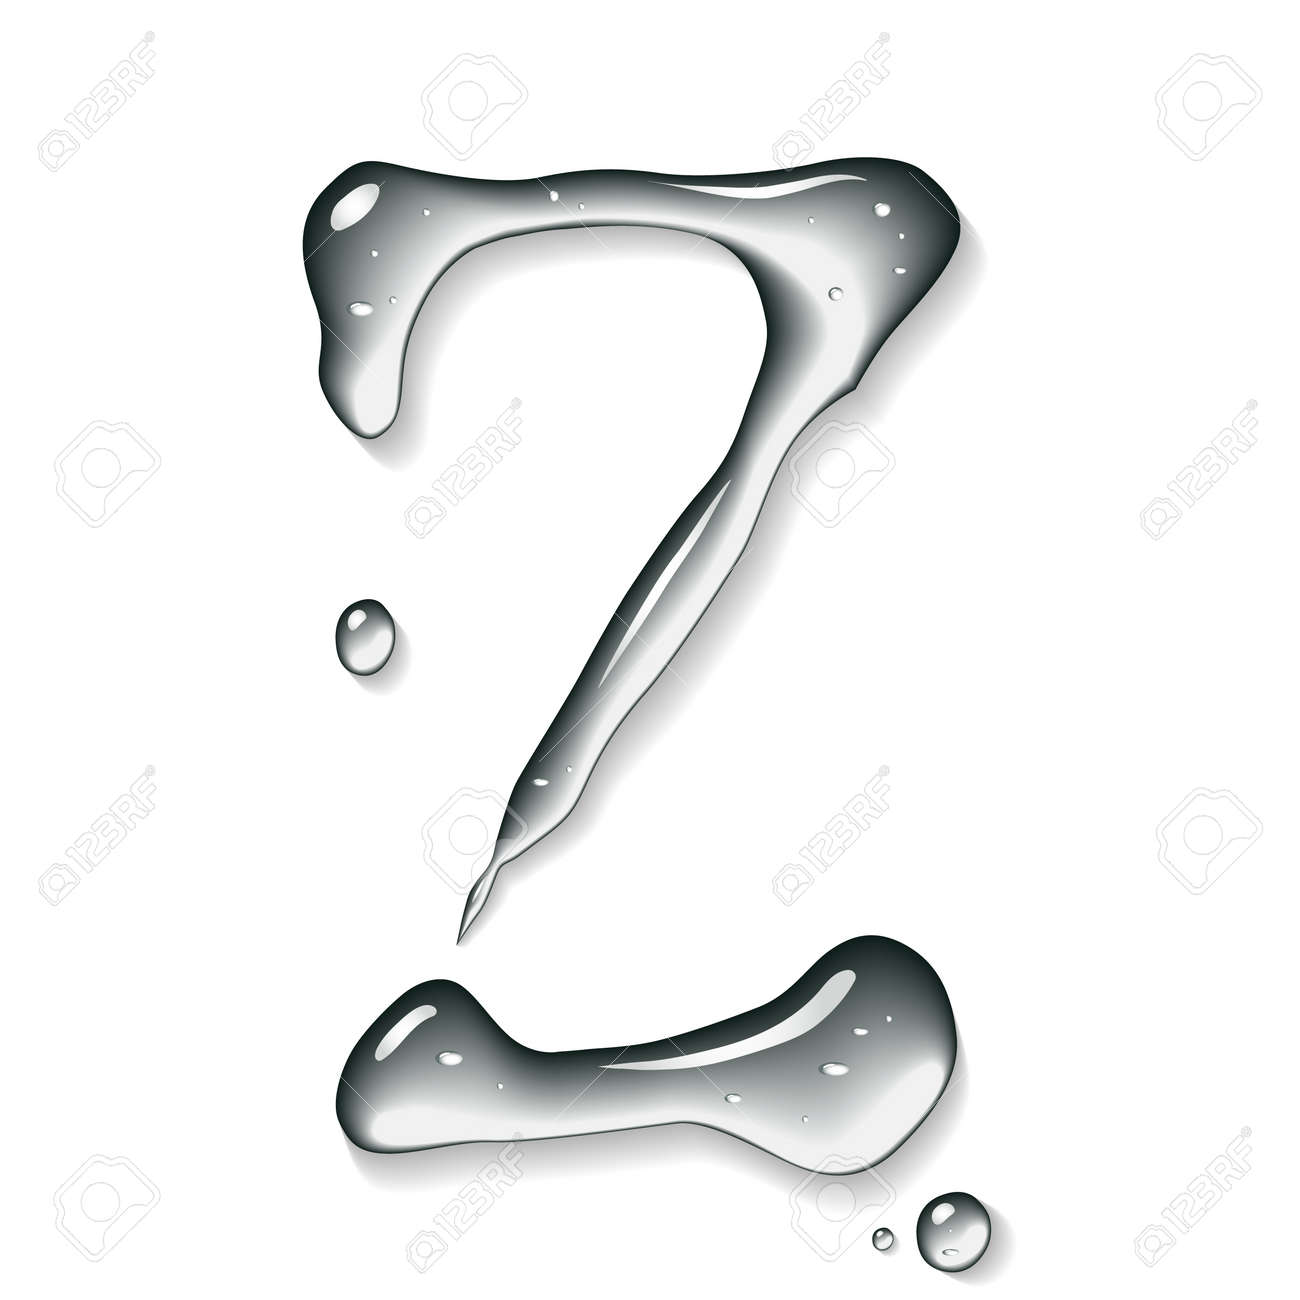 Water letter Stock Photo - 7599702